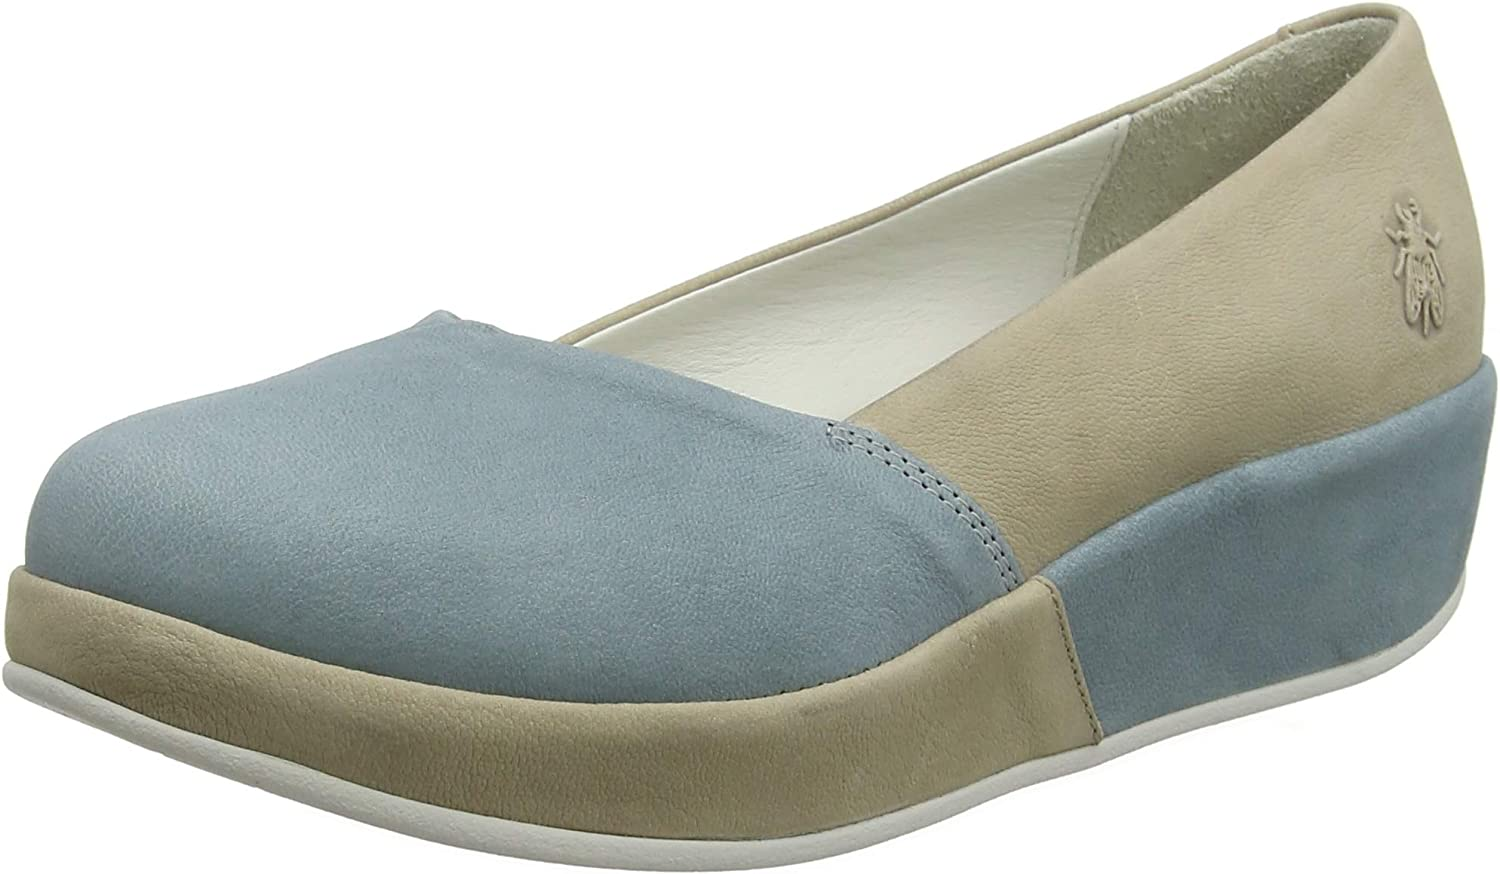 FLY London Sale Women's OFFicial mail order Closed Ballet Flats Toe